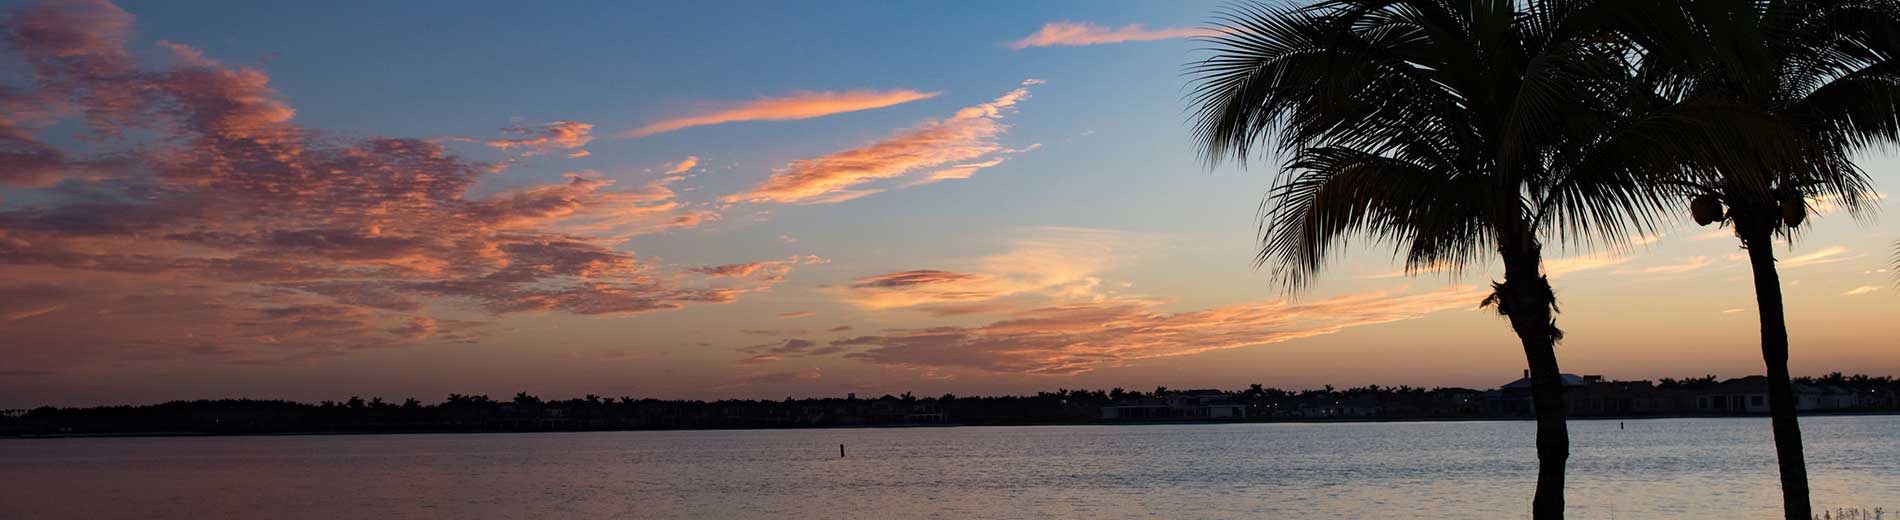 photo shows a florida sunrise